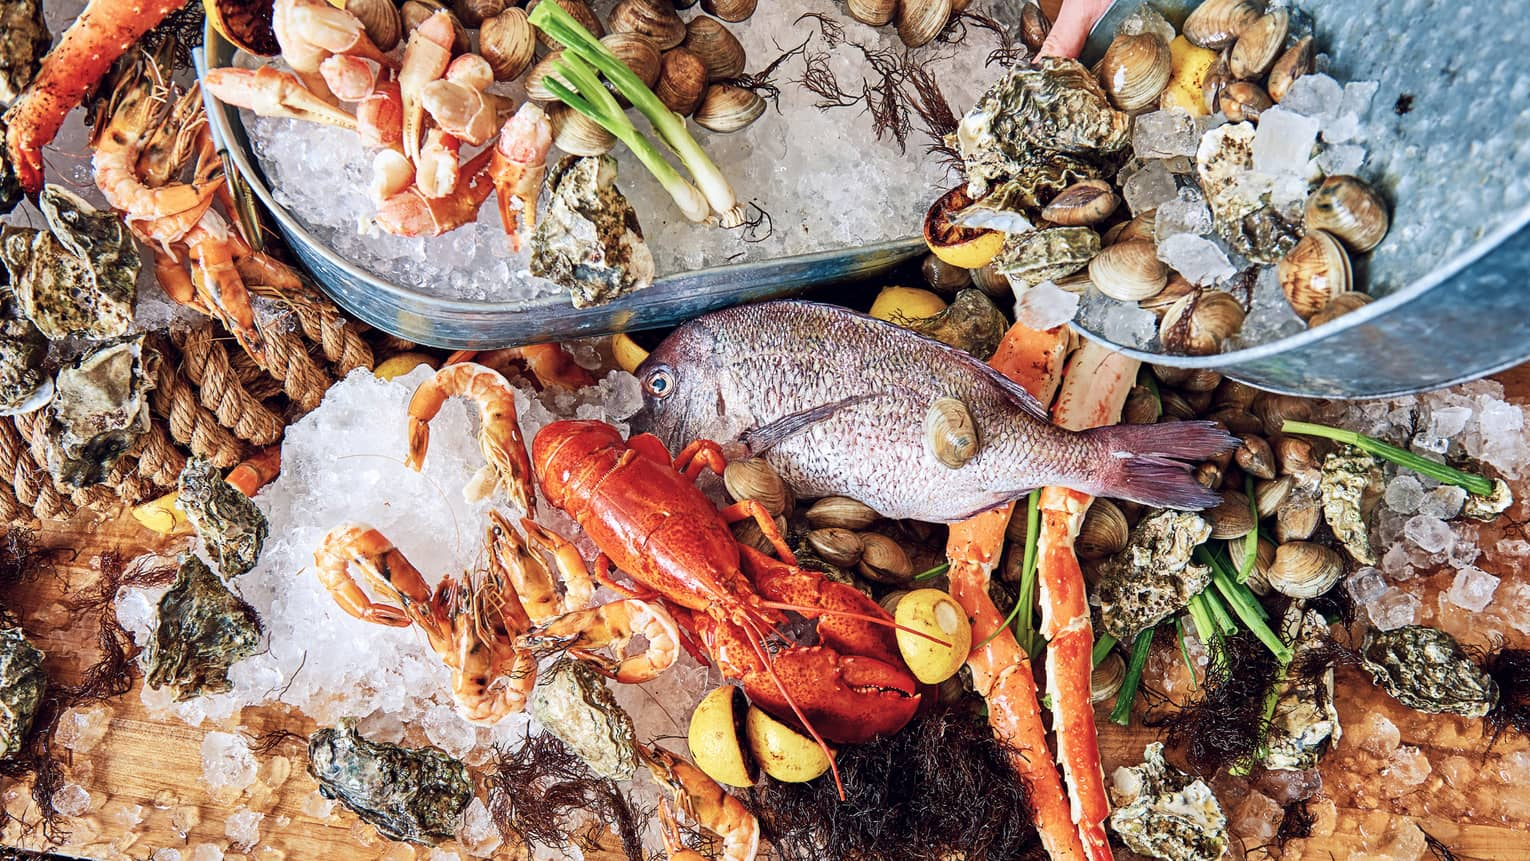 Aerial view seafood platter with whole fish, lobsters, clams and shrimps on bed of ice cubes